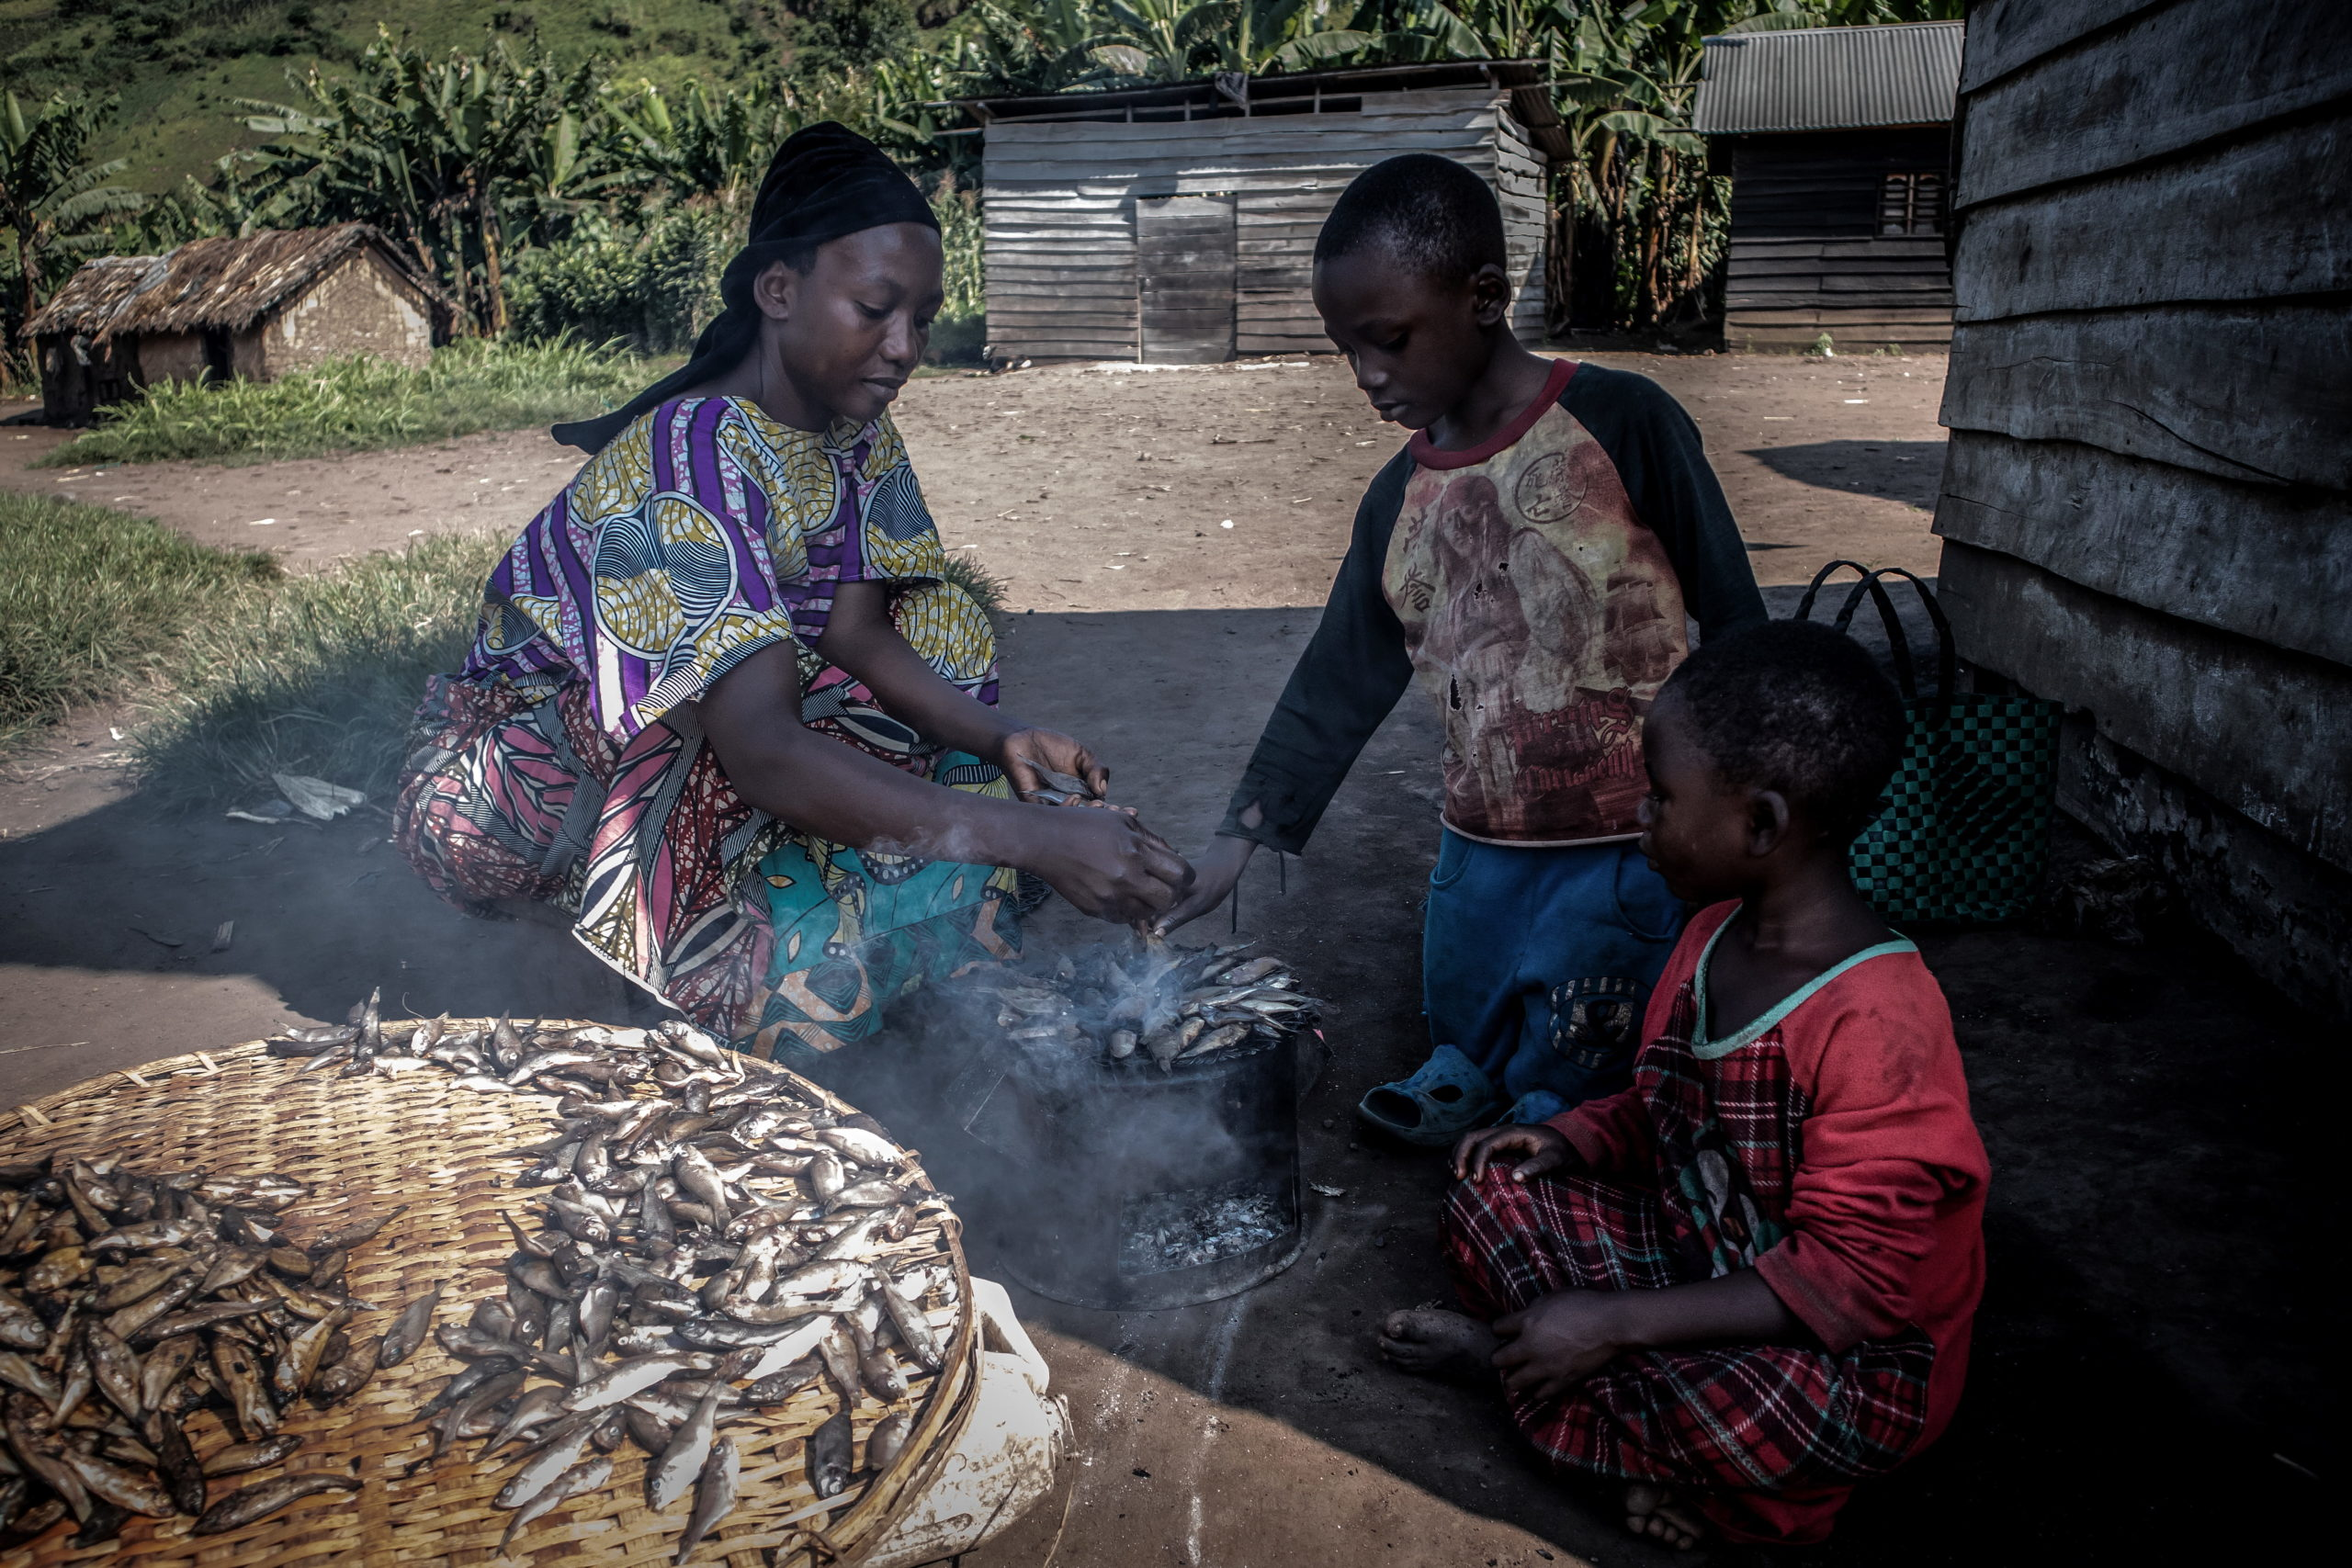 Minova, DRC, December 2020. A woman prepares a meal of Sambaza, or fried fish, on a charcoal stove inside her home in the eastern Congolese town of Minova. © Guerchom Ndebo for Fondation Carmignac